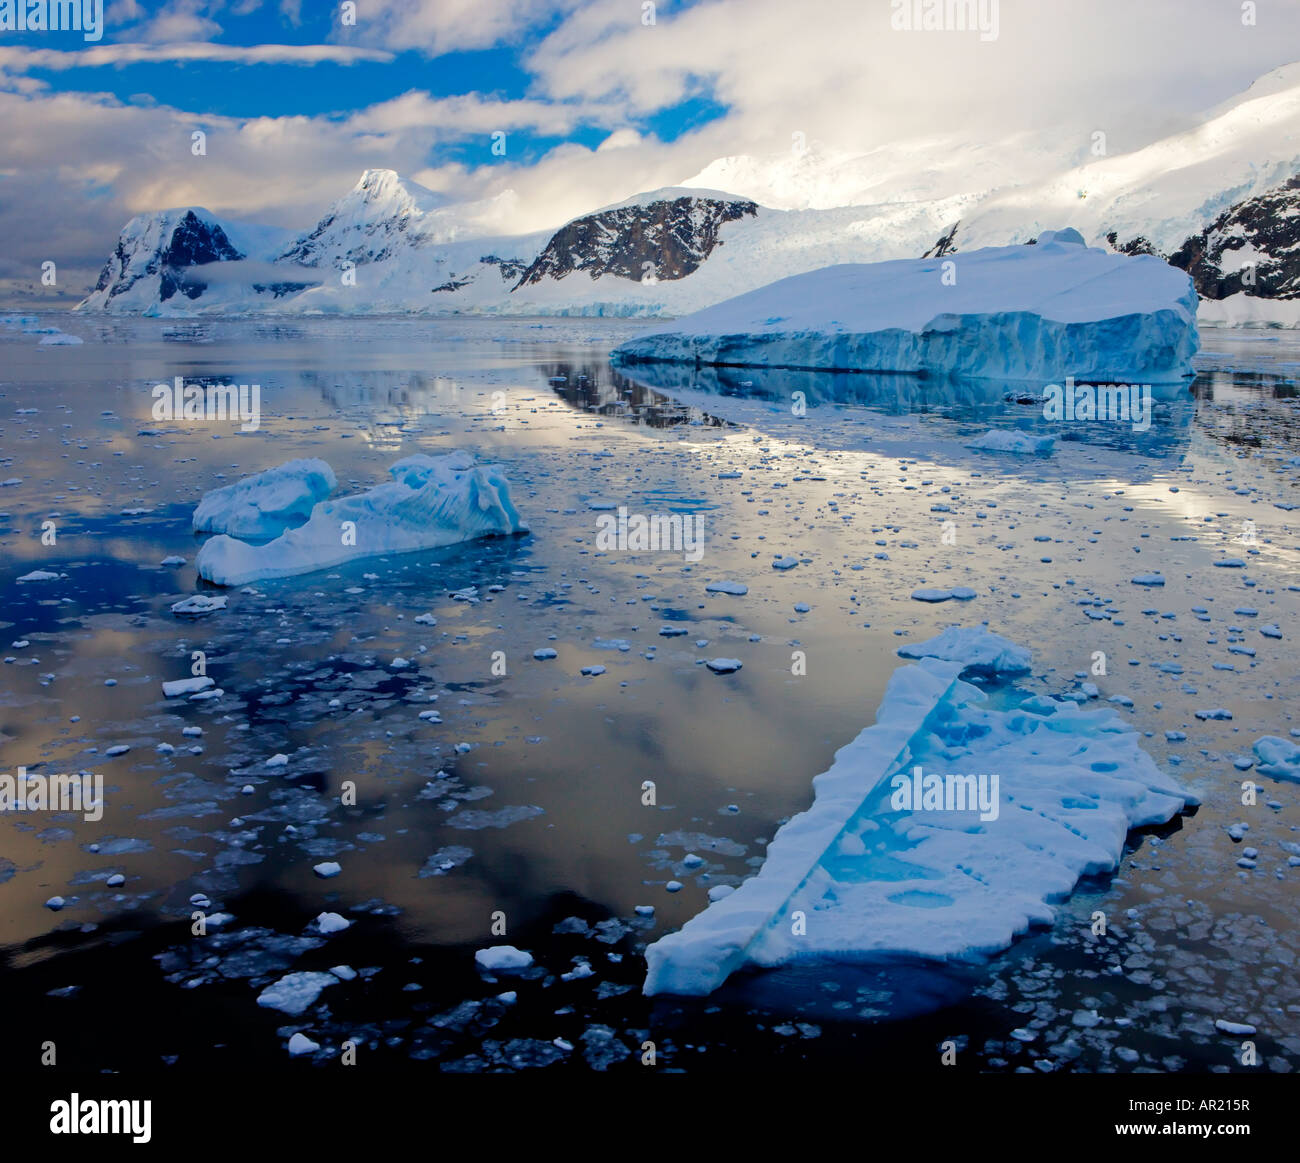 Icebergs and mountains along the Antarctic Peninsula - Stock Image